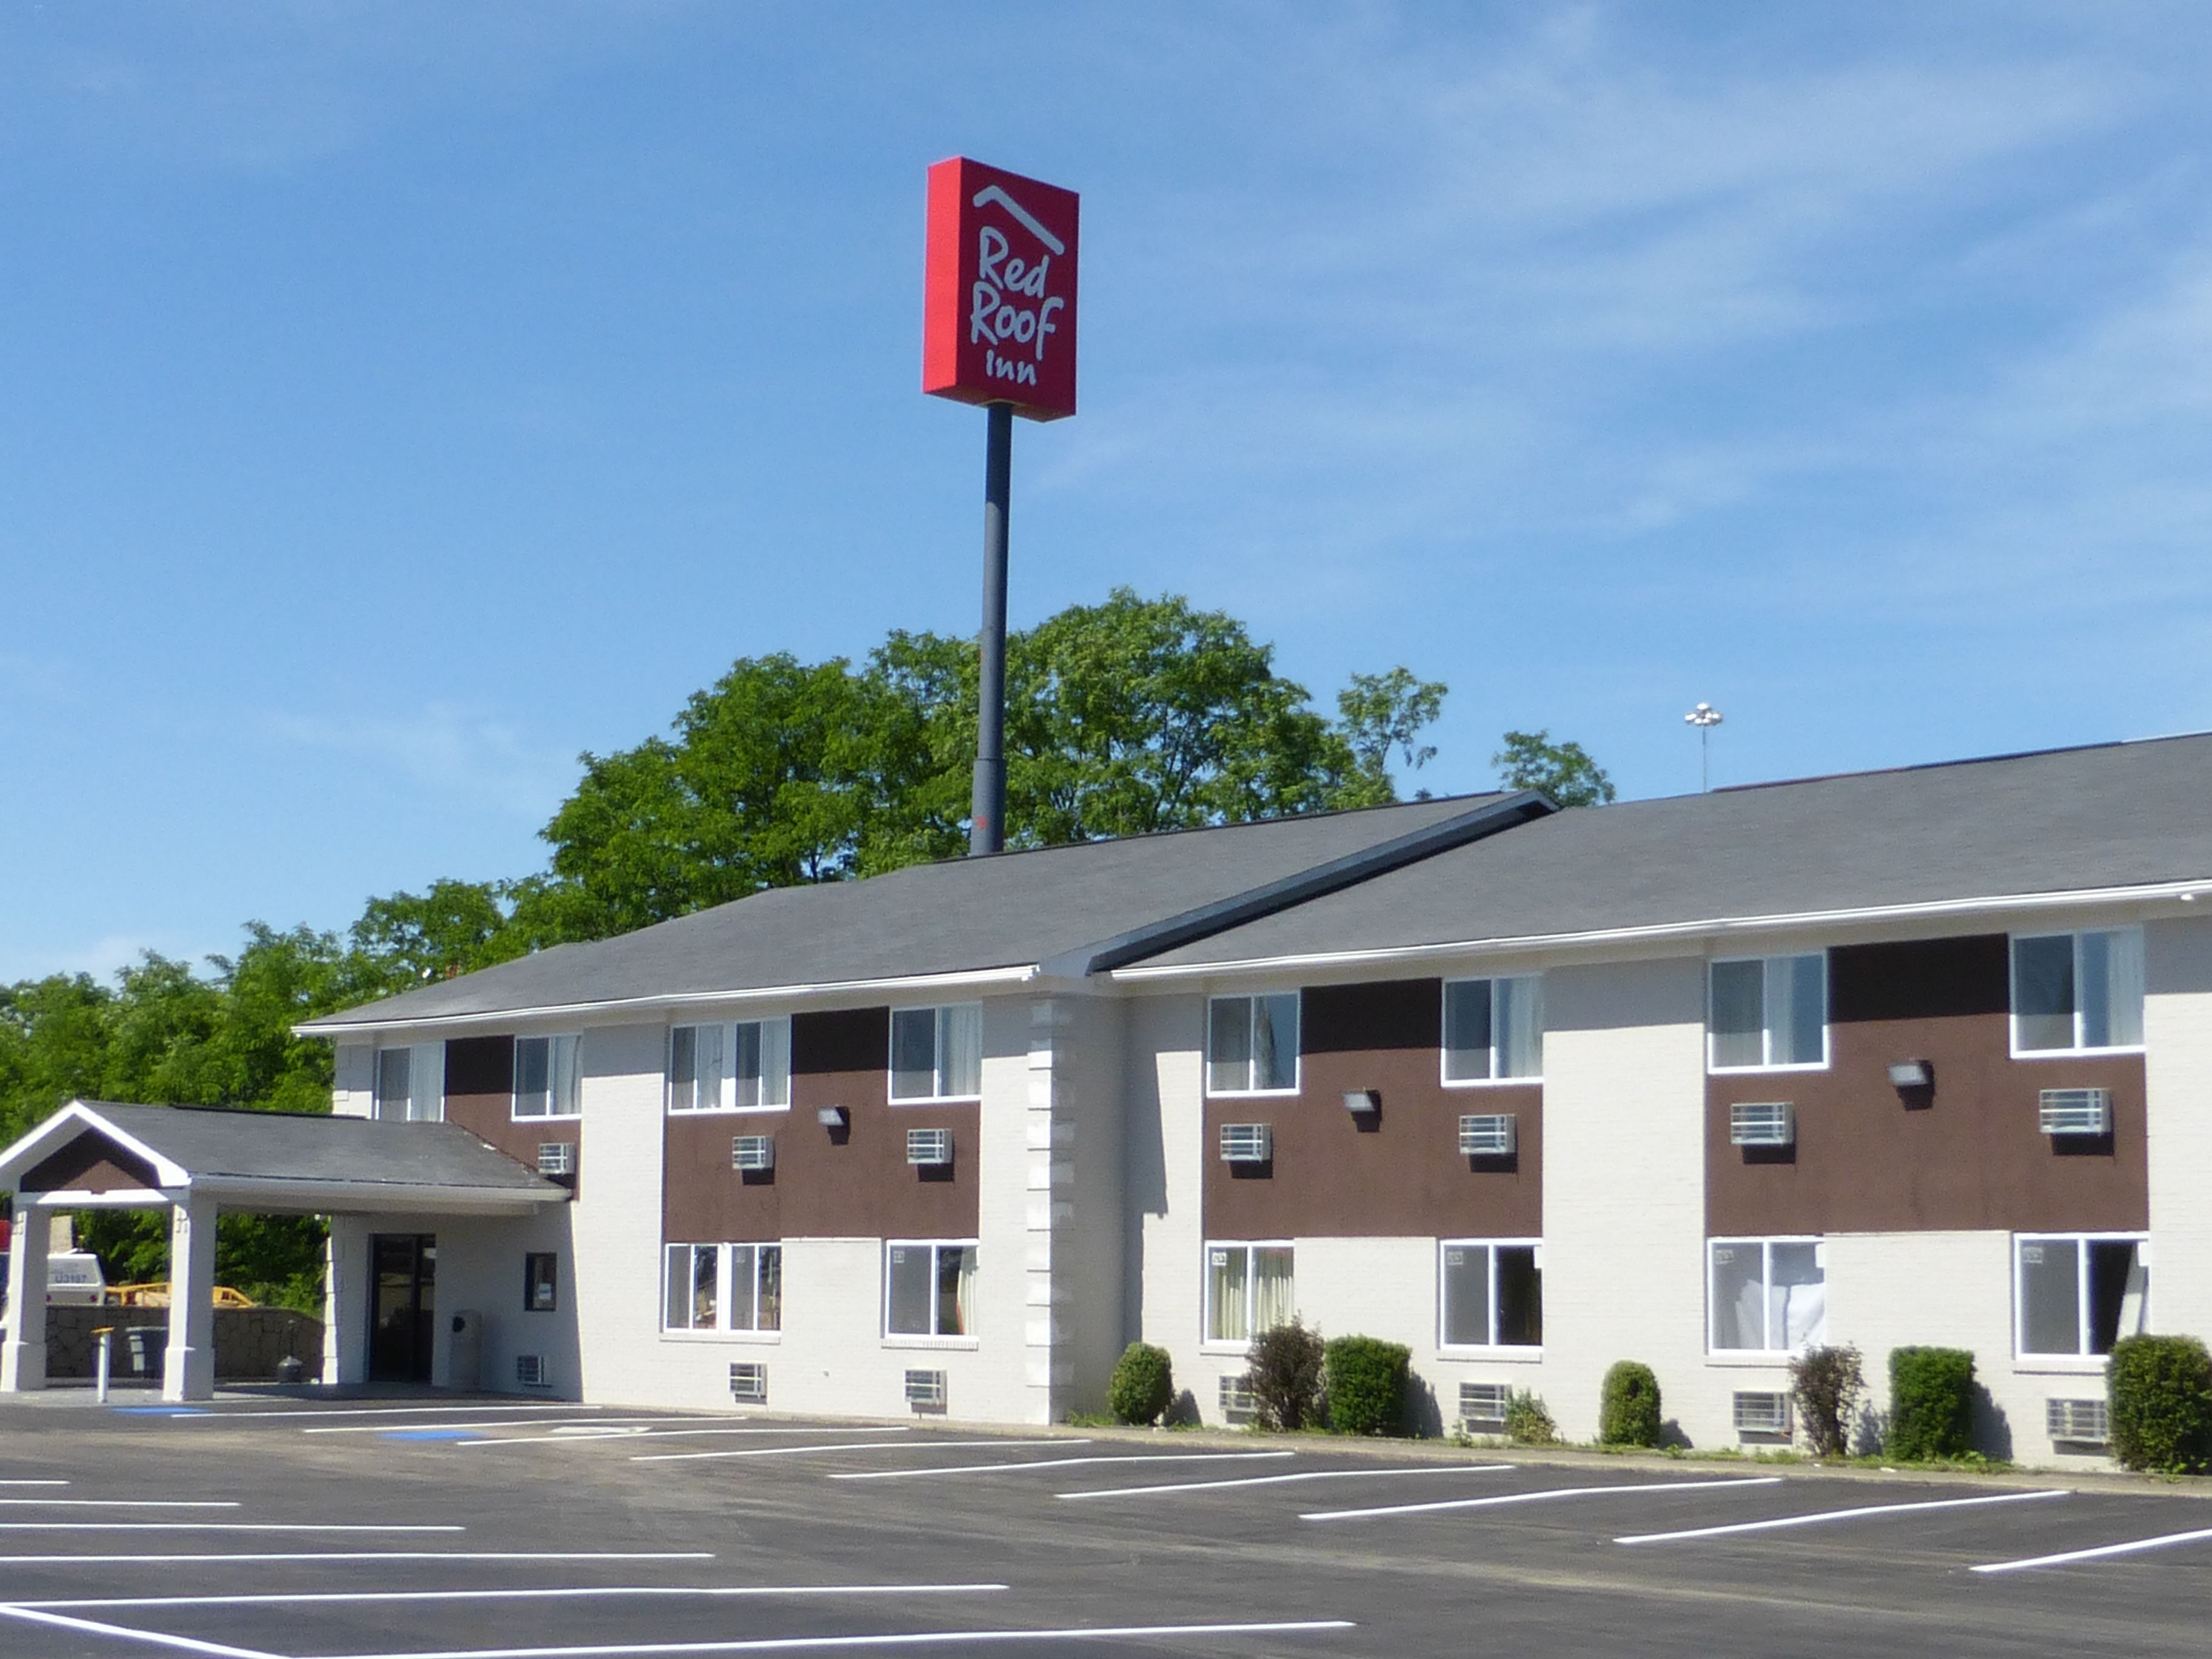 Budget Pet Friendly Hotel In Dry Ridge Ky 41035 Red Roof Inn Red Roof Inn Red Roof Dry Ridge